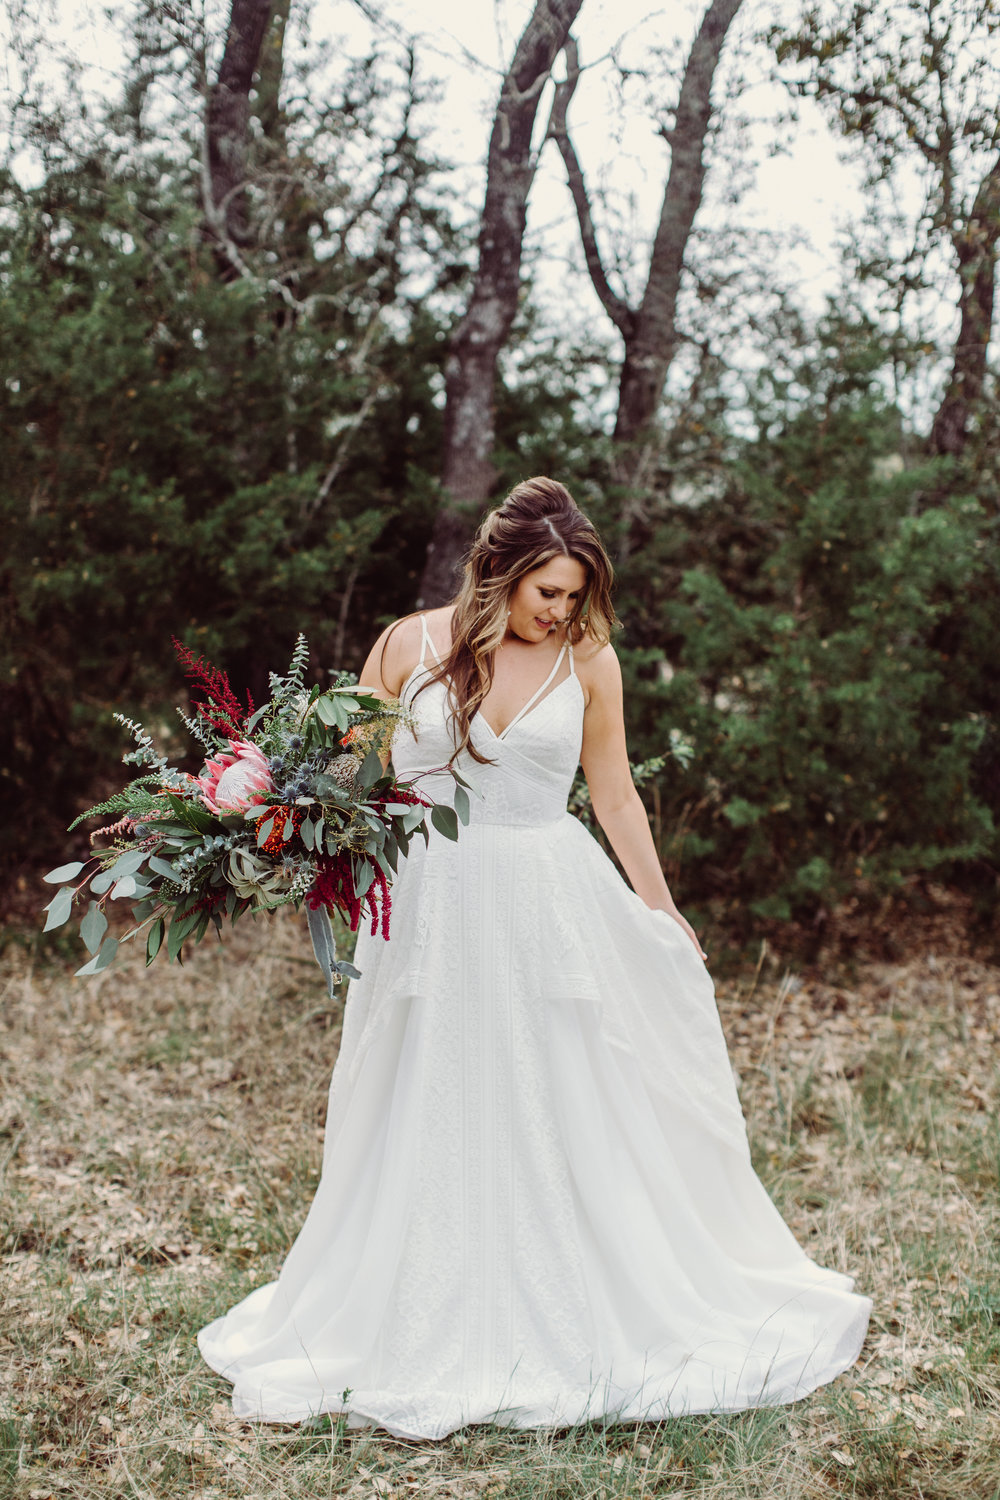 Boho wedding bride bouquets with eucalyptus, protea, thistle, astilbe Petal Pushers floral event design studio located in Dripping Springs, Texas.